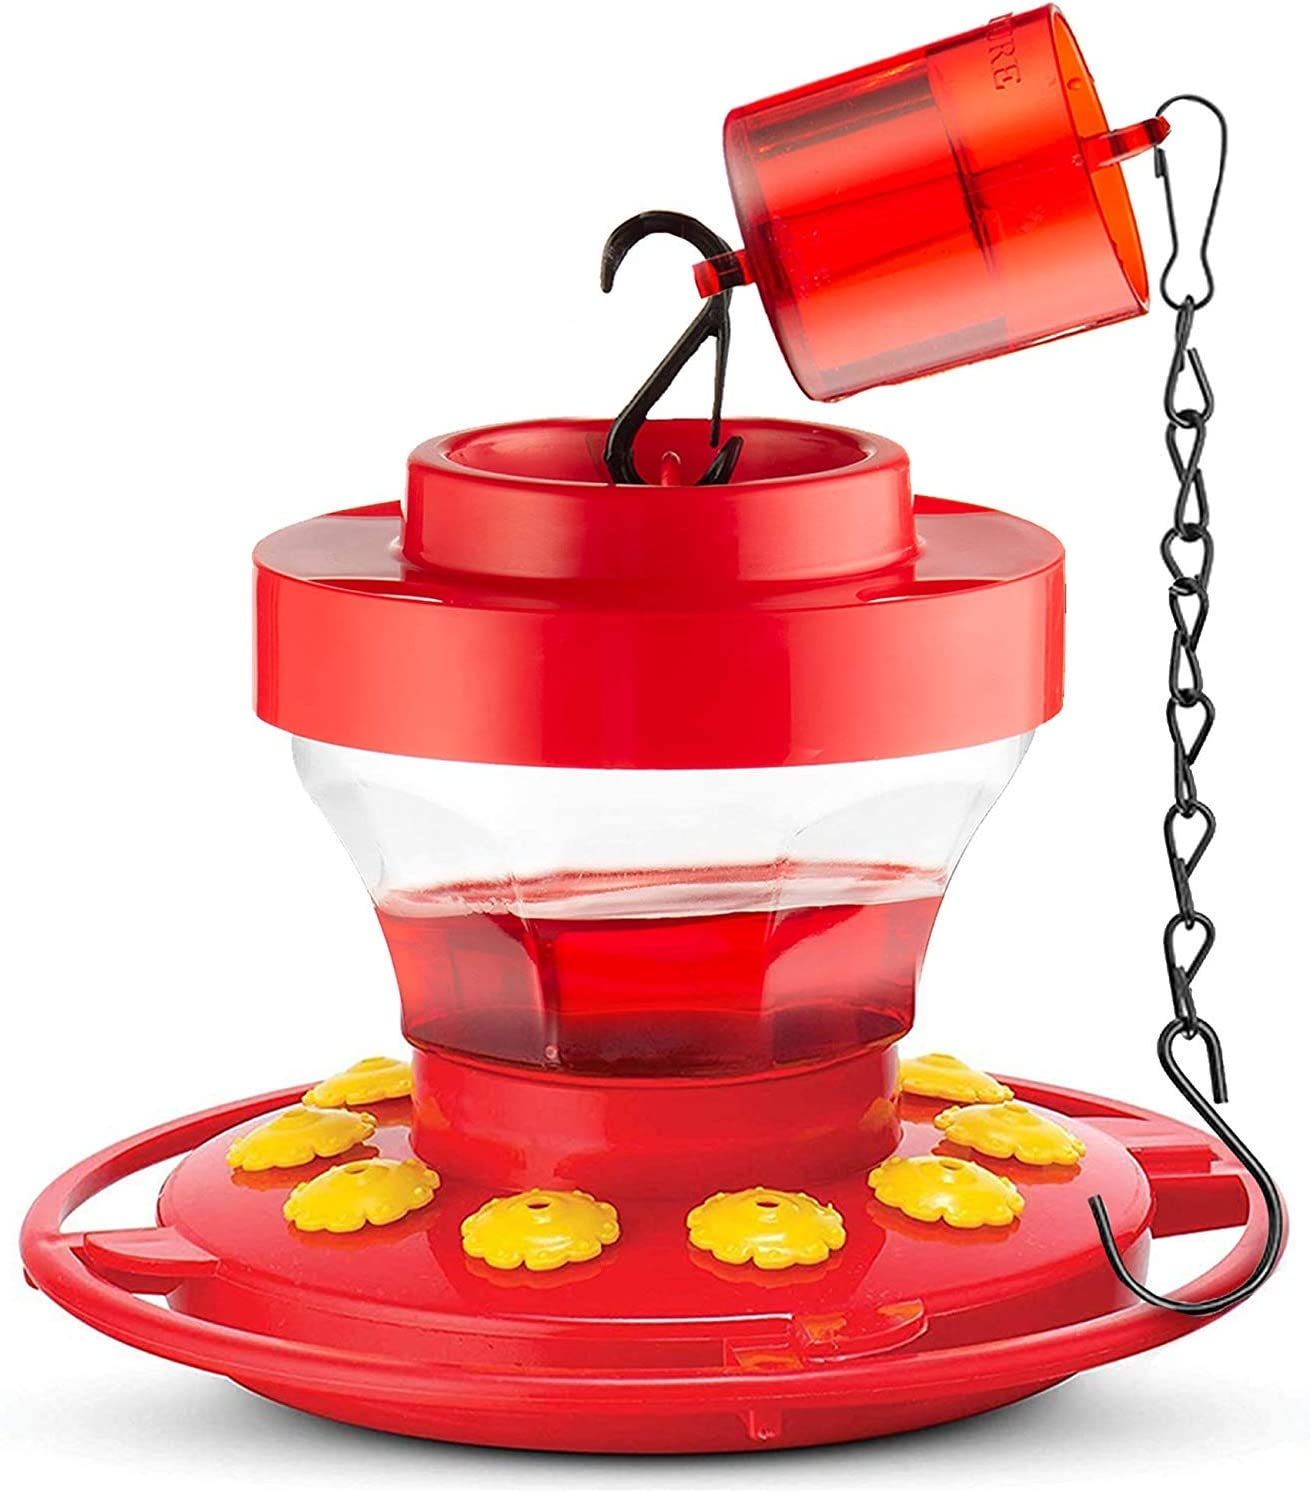 SEWANTA Hummingbird Feeders for Outdoors 16-Ounce - First Nature Hummingbird Feeder Includes, Perch with 10 Feeding Ports. Bundled with Attachable Ant Guard with Hanging Chains 9.5 Inch [3Pcs Set]